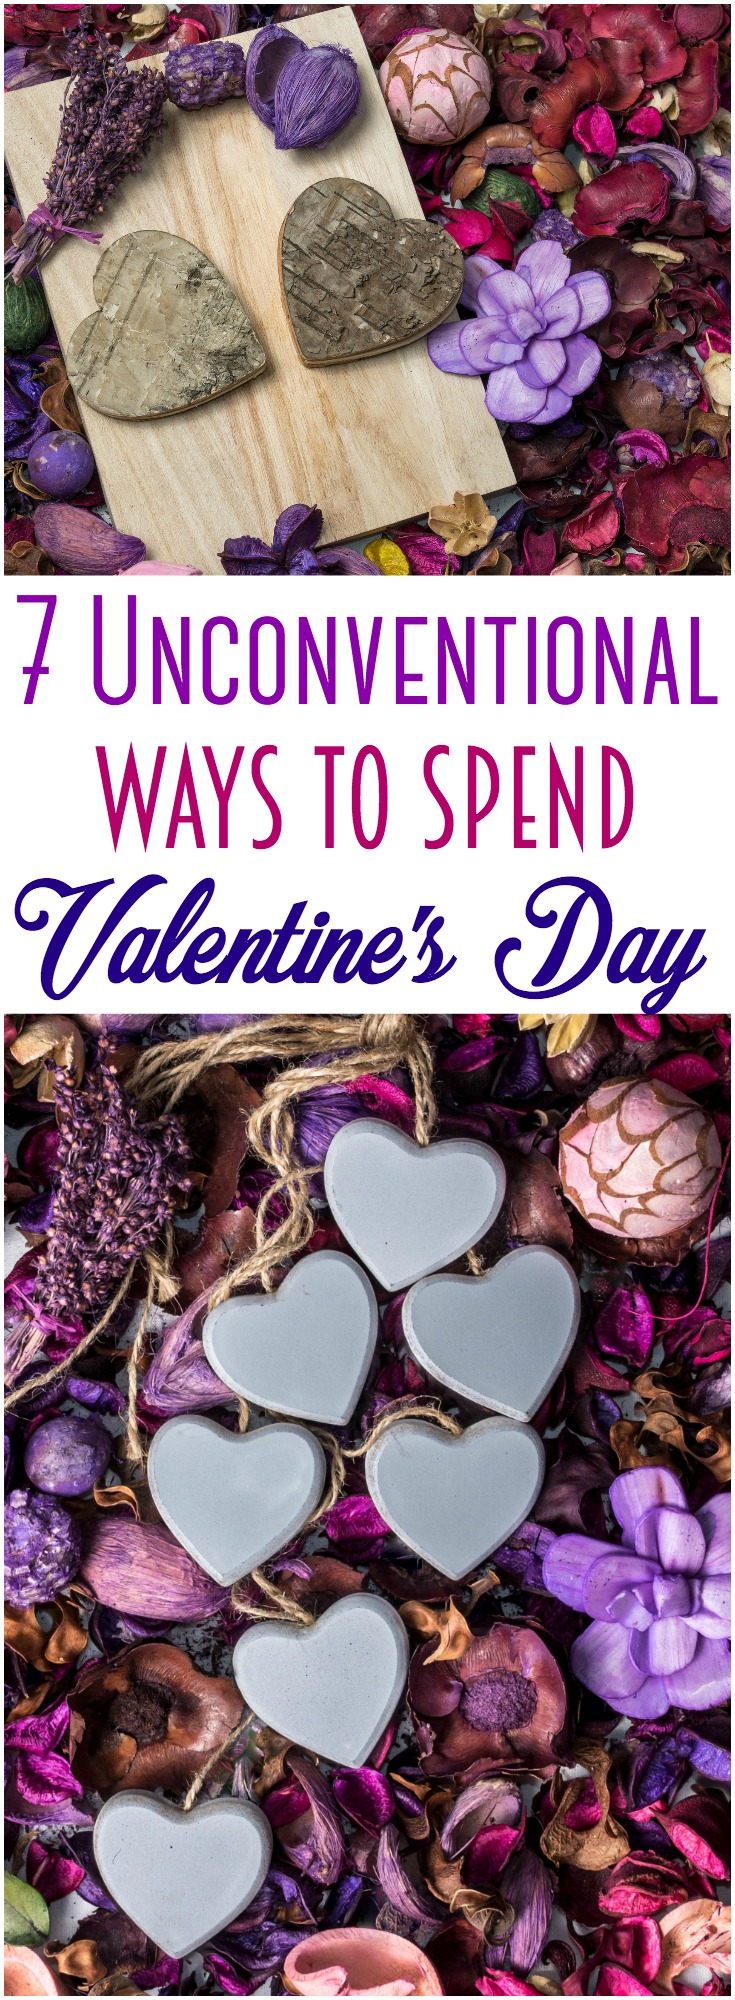 Every year, Valentine's Day entails the same thing: dinner, a movie, chocolates or flowers. This year, change it up a bit ~ here are 7 unique date ideas for Valentine's Day. #ValentinesDay #love #datenight #marriage #dating #savingmoney